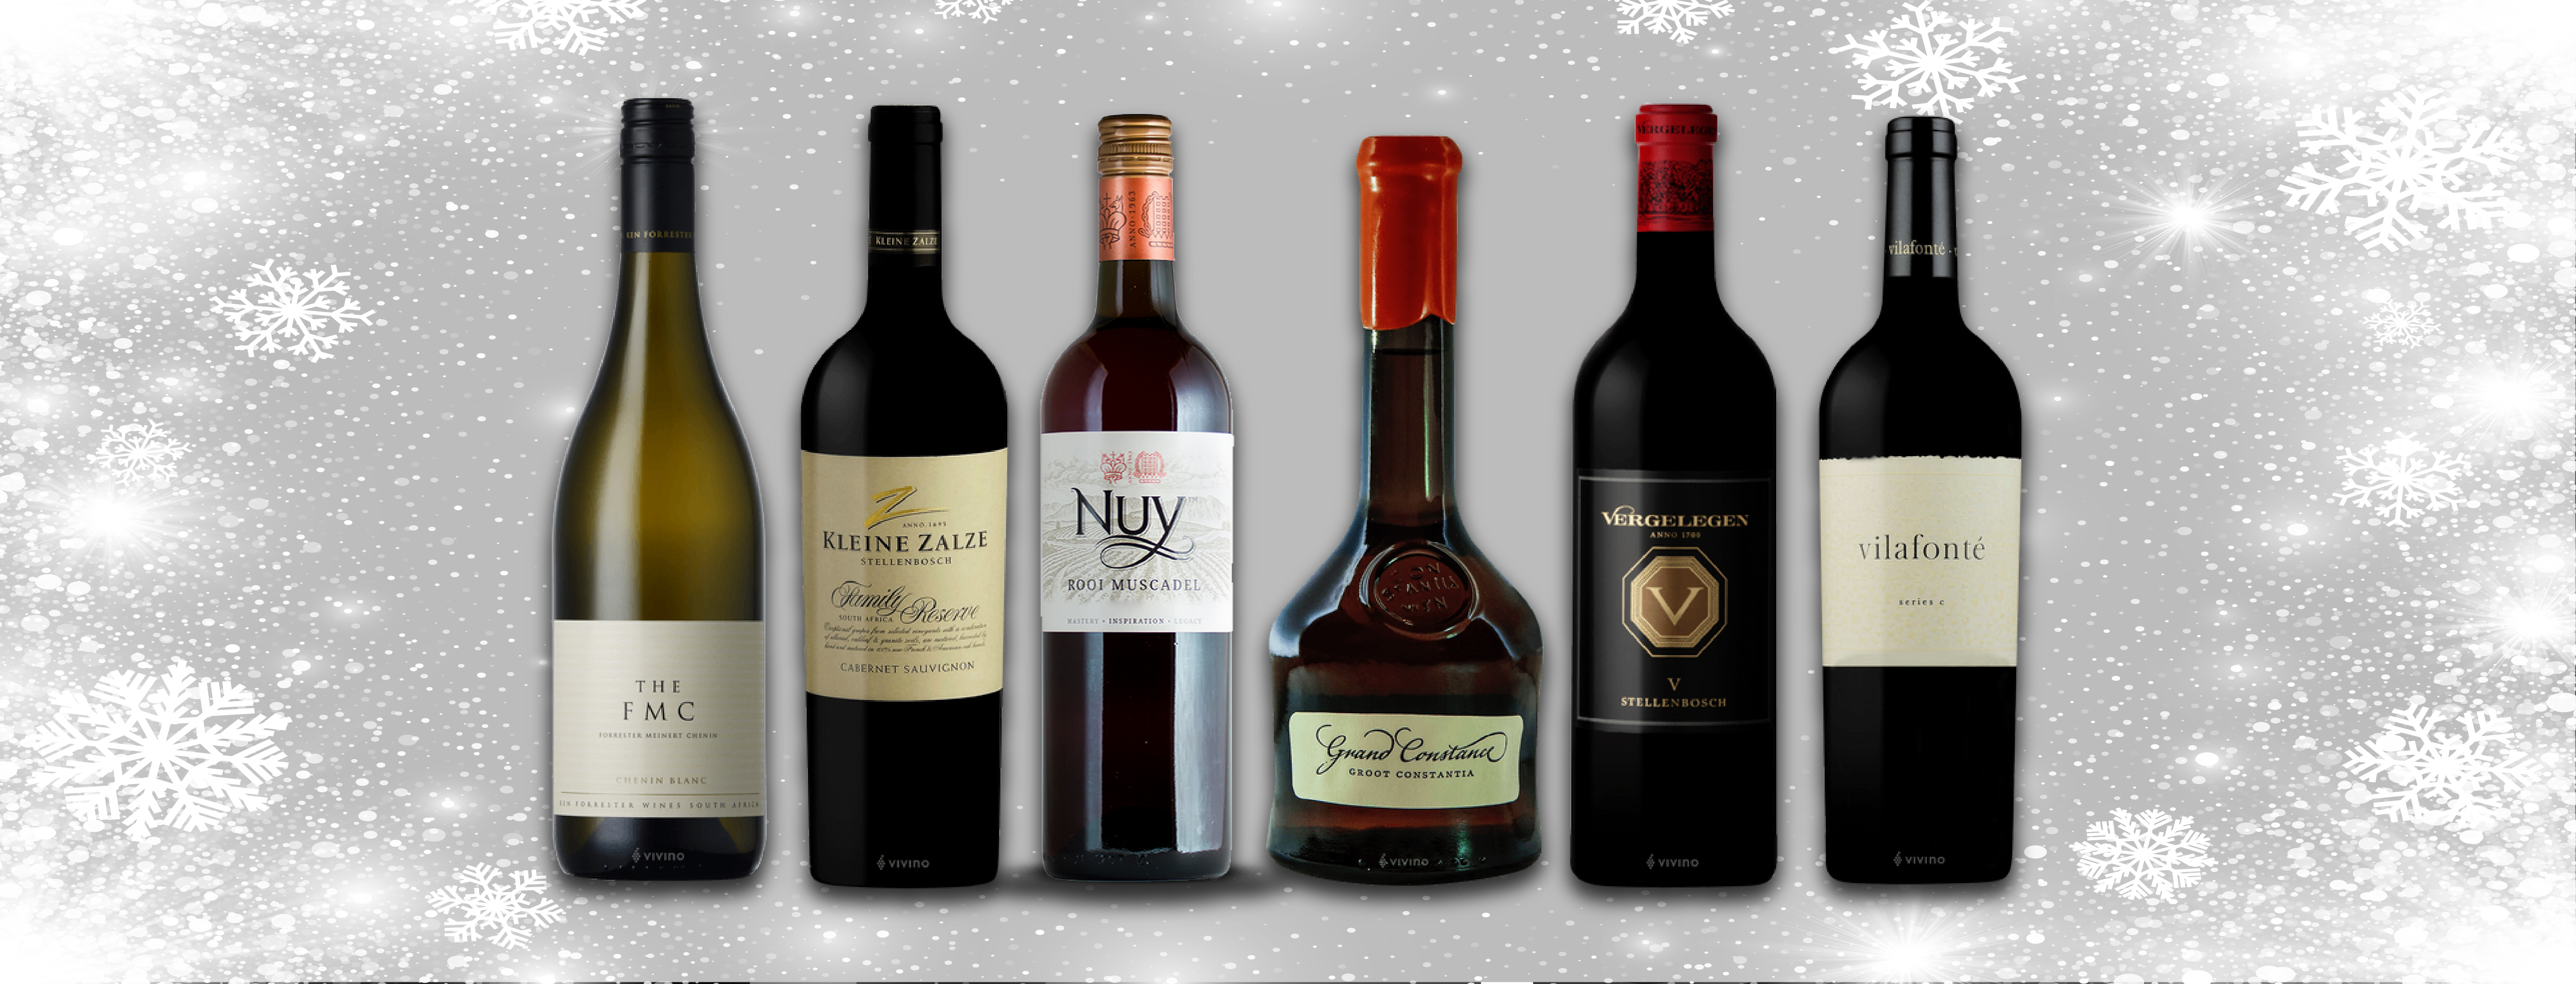 SHOP THE PERFECT WINE GIFT WITH THE SOUTH AFRICA HOUSE OF WINE